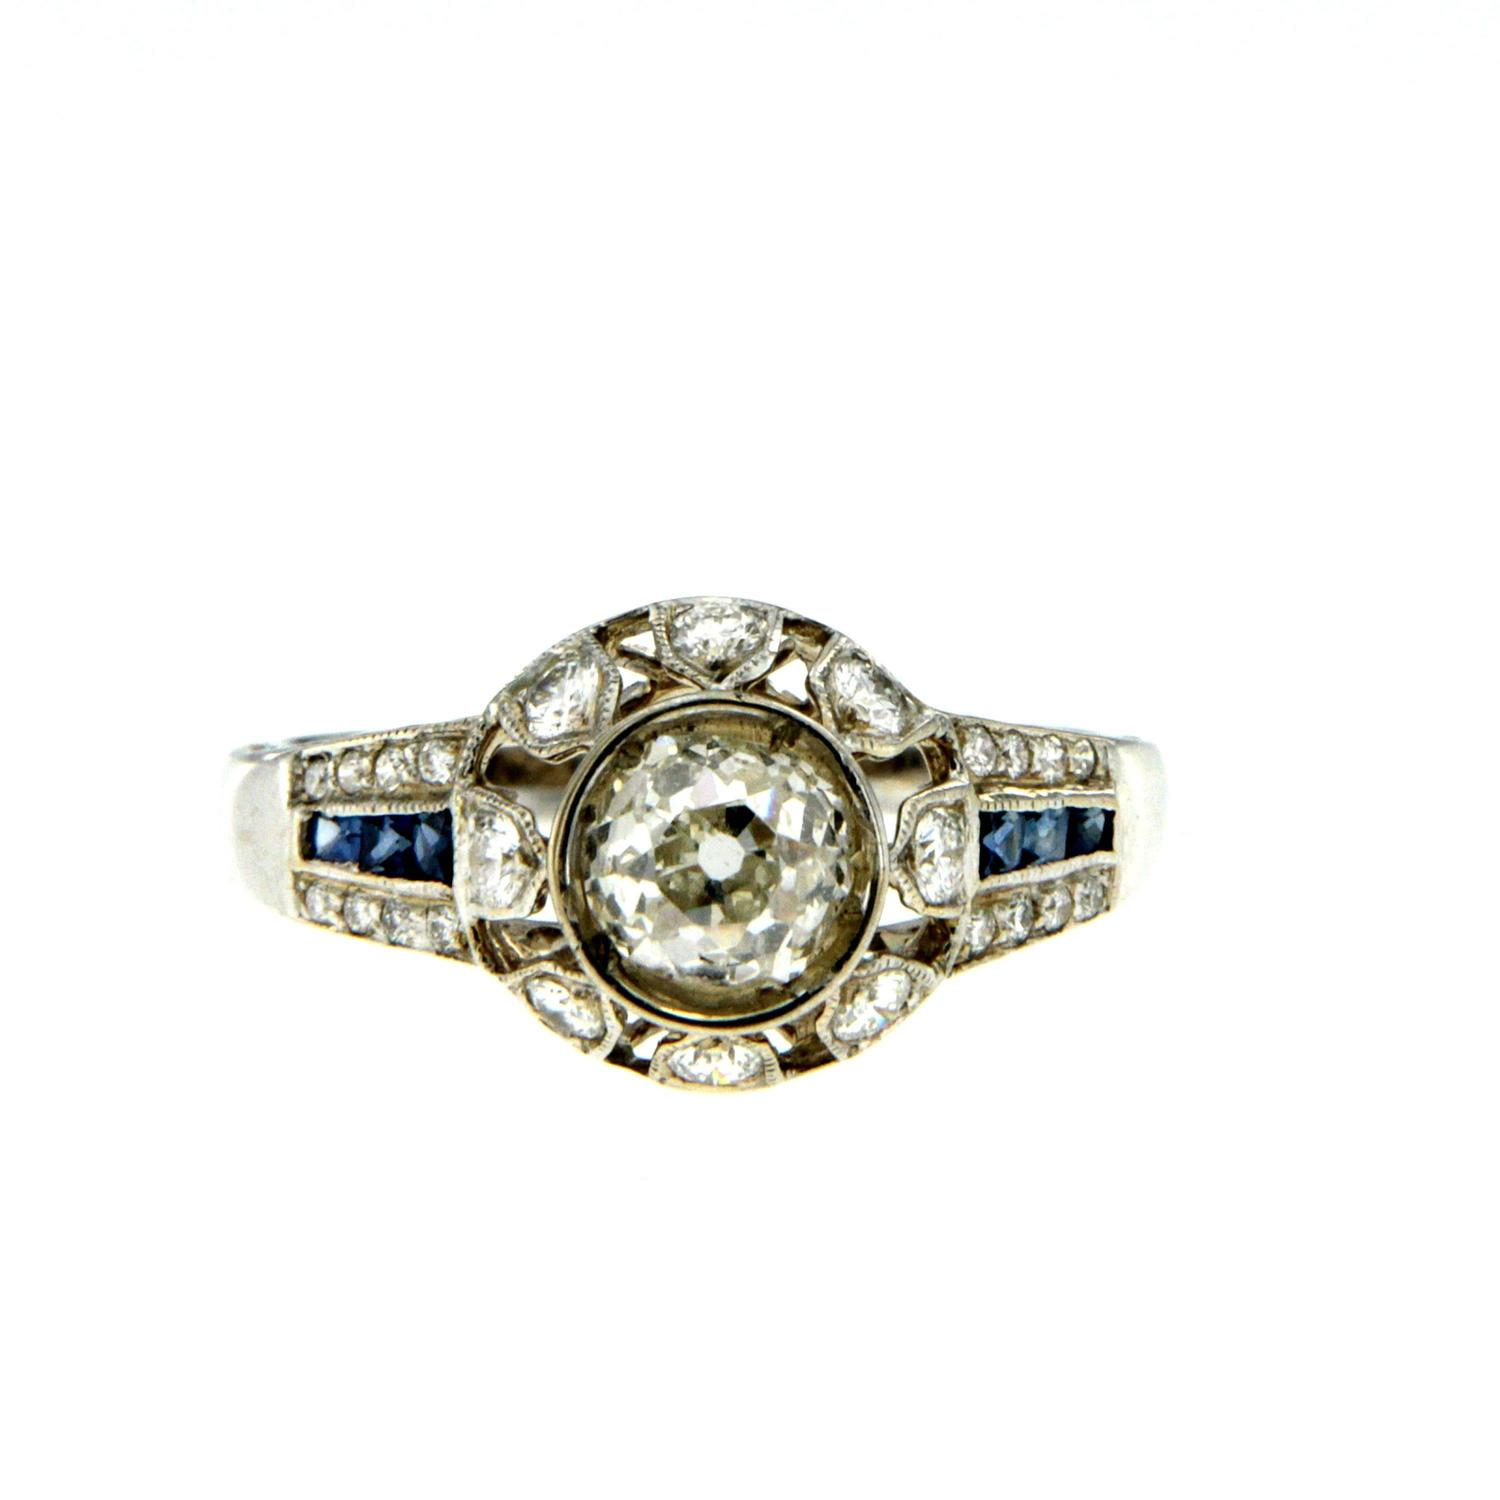 Antique Diamond Sapphire Gold Engagement Ring For Sale at 1stdibs